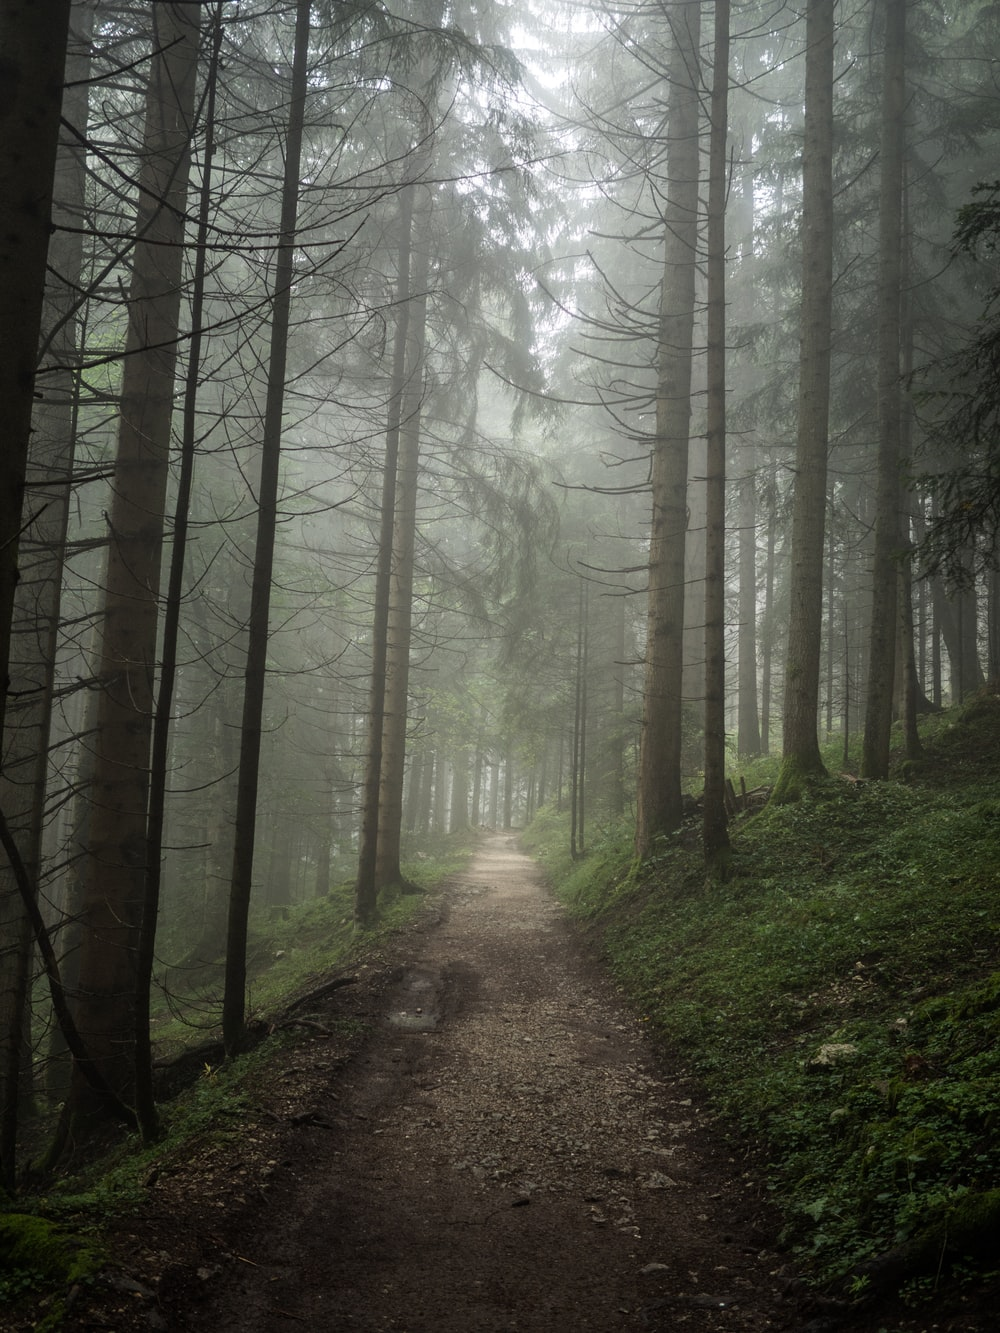 pathway along forest during foggy day